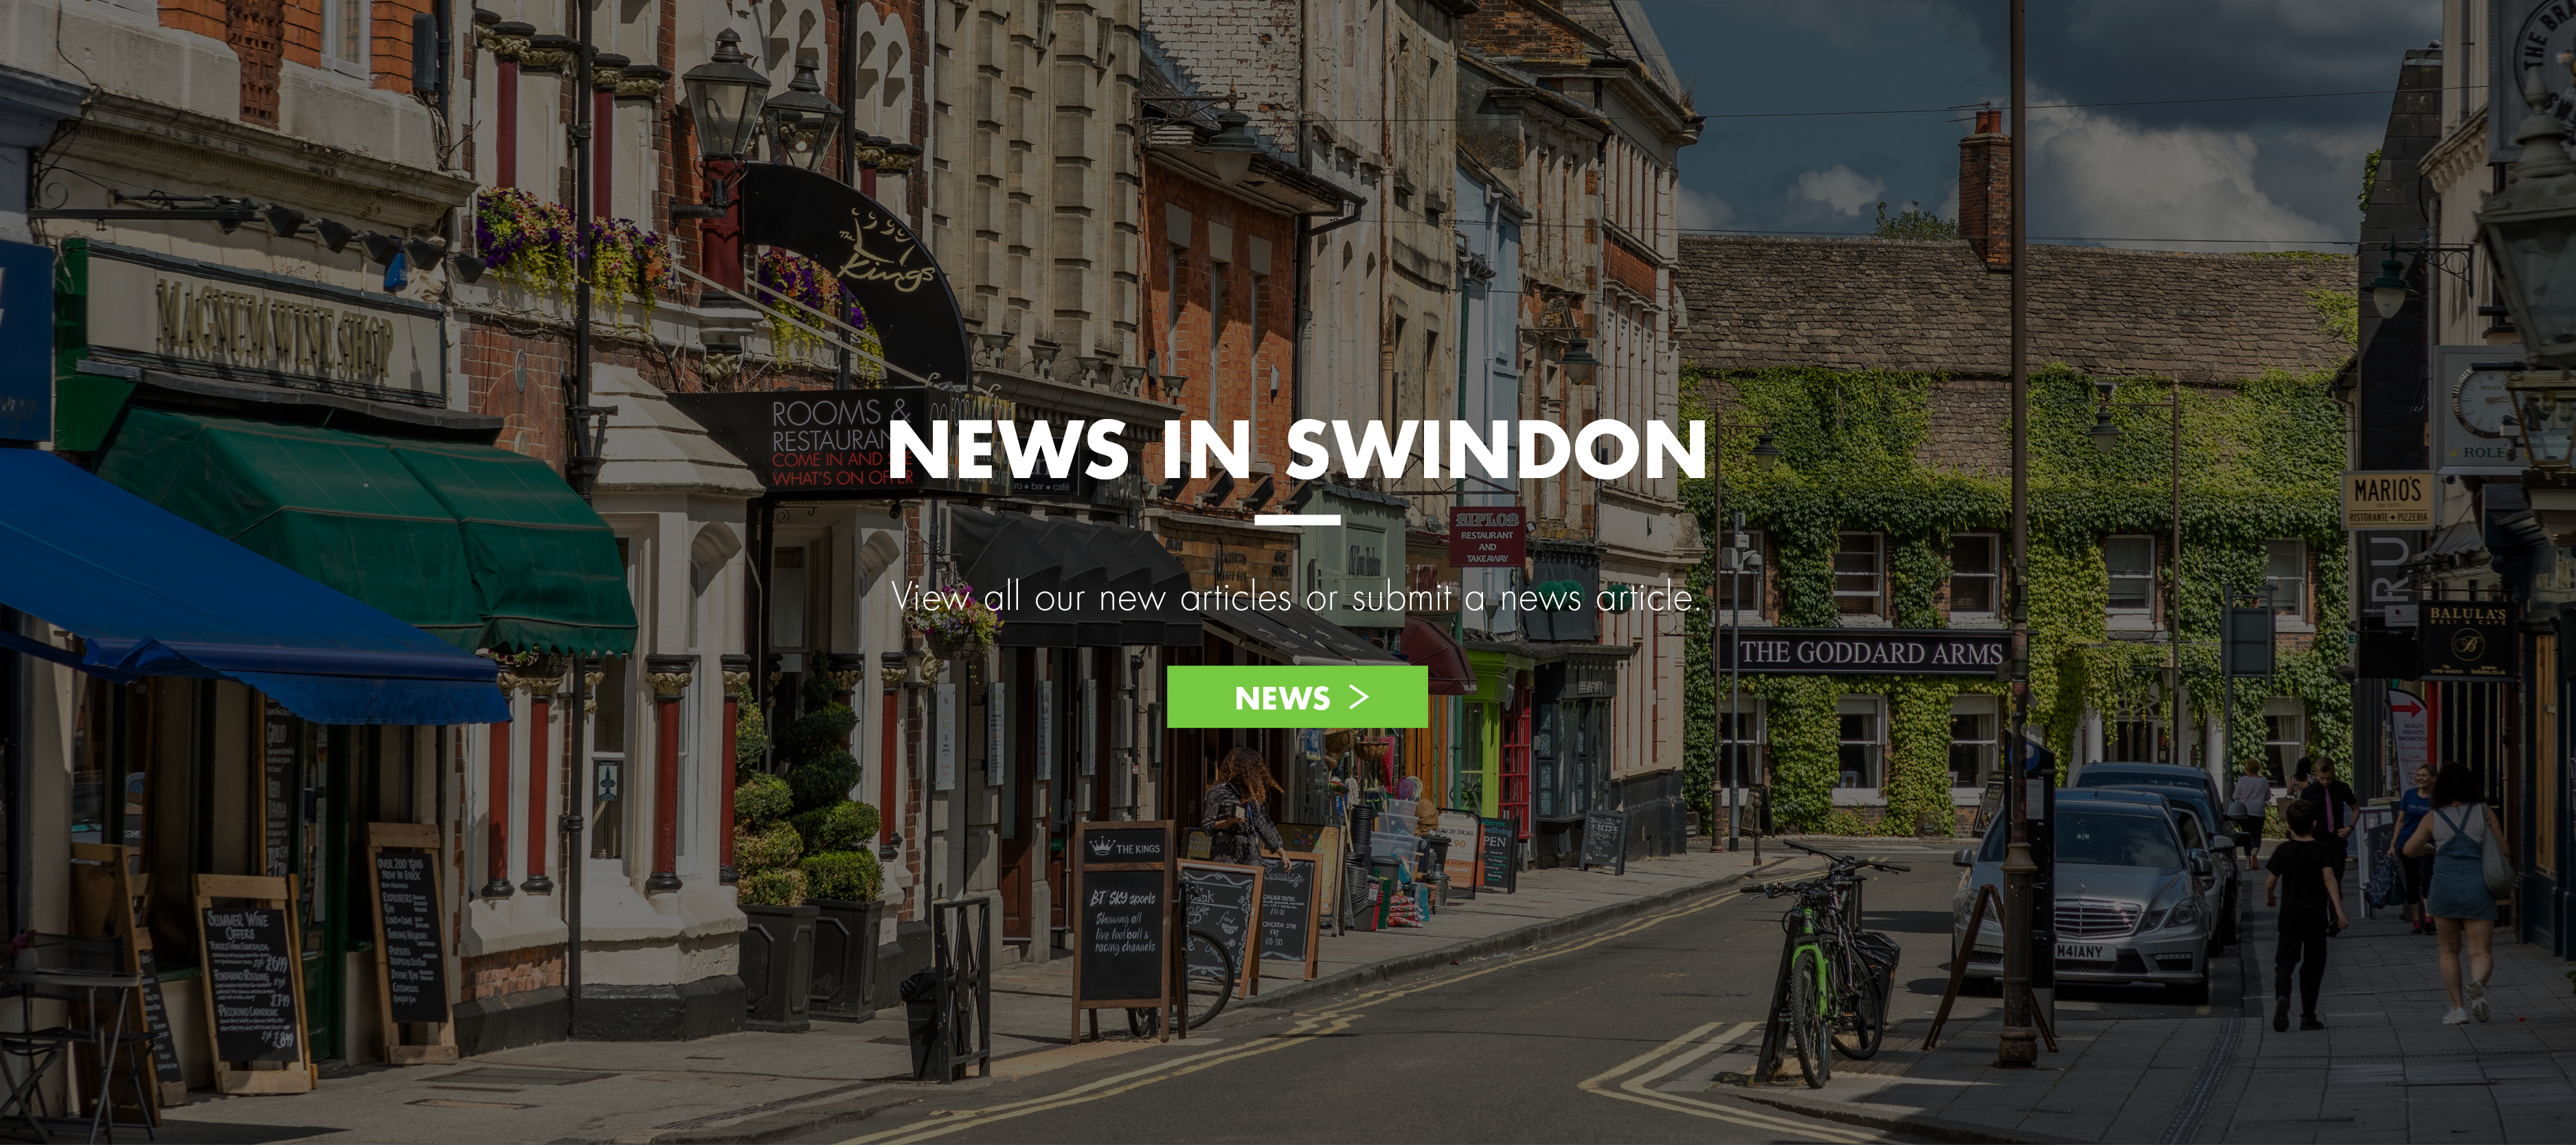 News In Swindon